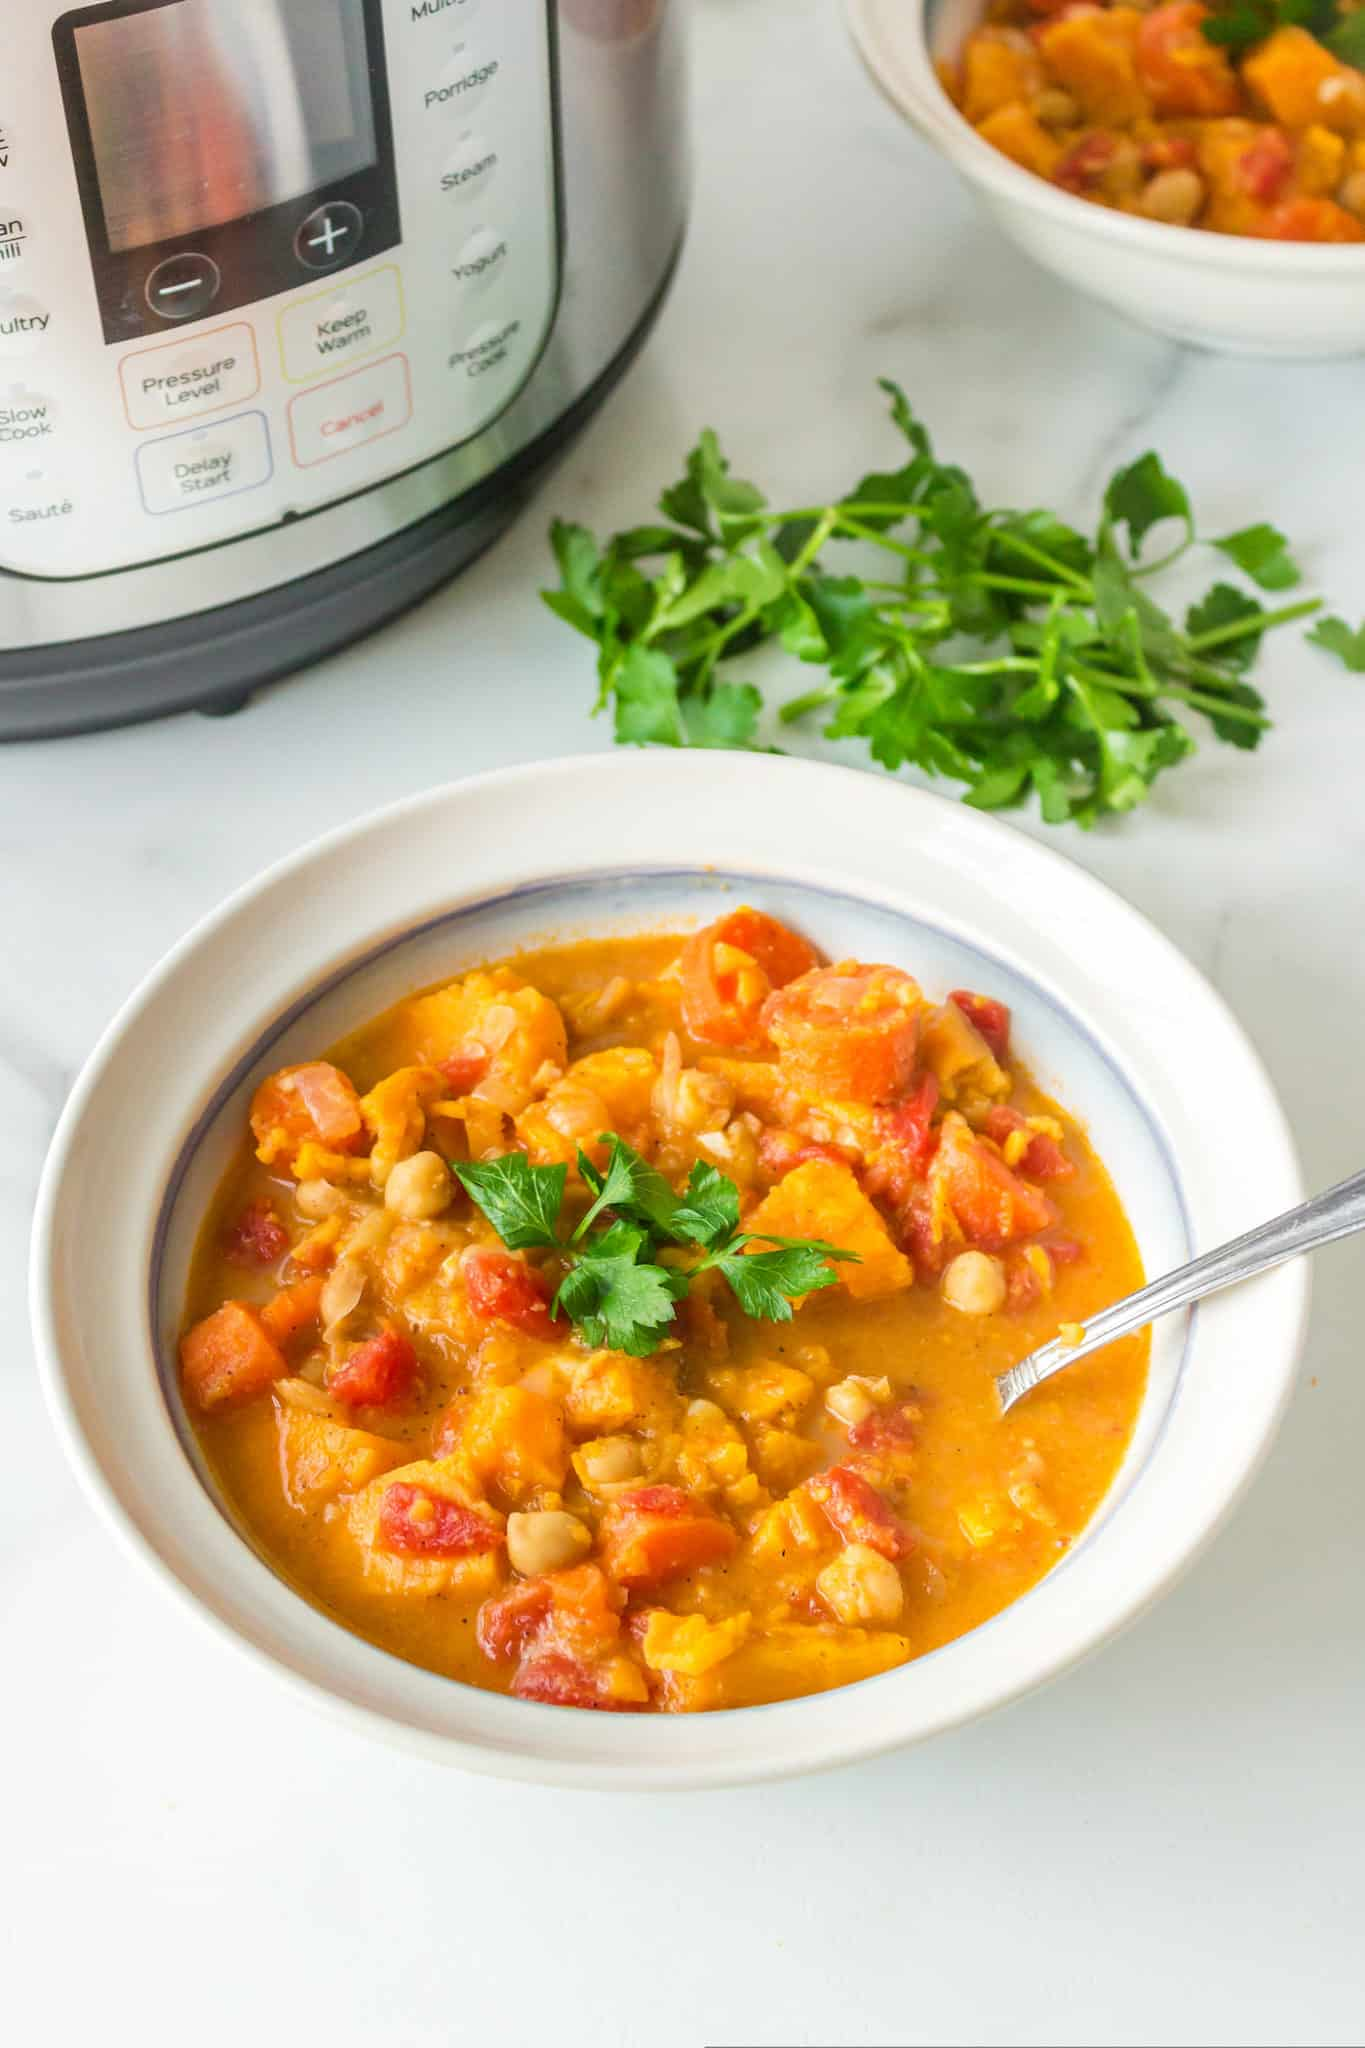 A bowl of instant pot vegan stew topped with fresh parsley